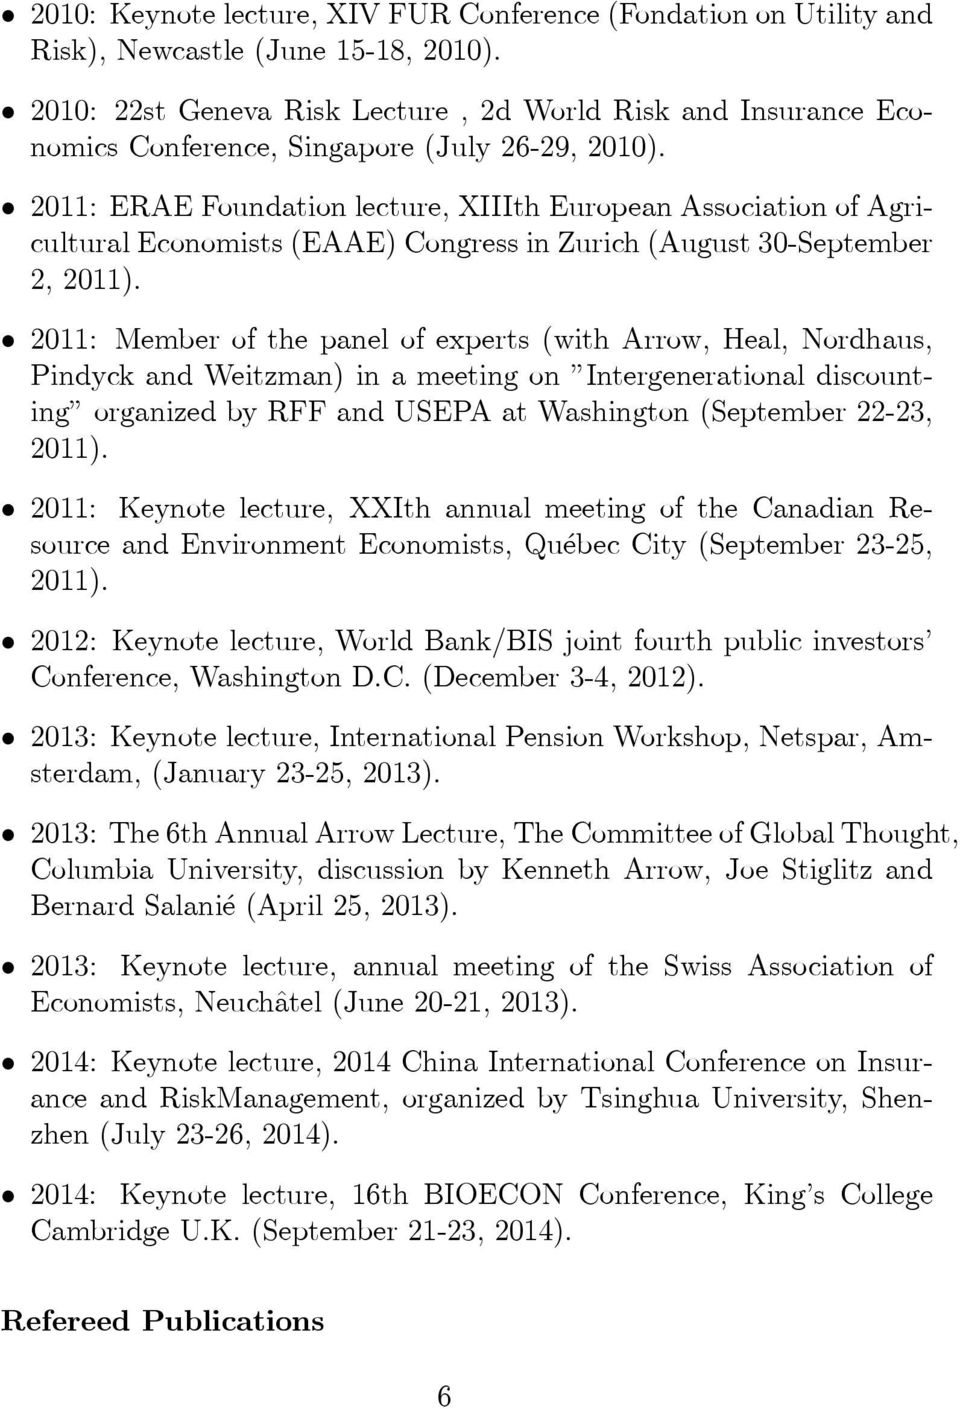 2011: ERAE Foundation lecture, XIIIth European Association of Agricultural Economists (EAAE) Congress in Zurich (August 30-September 2, 2011).